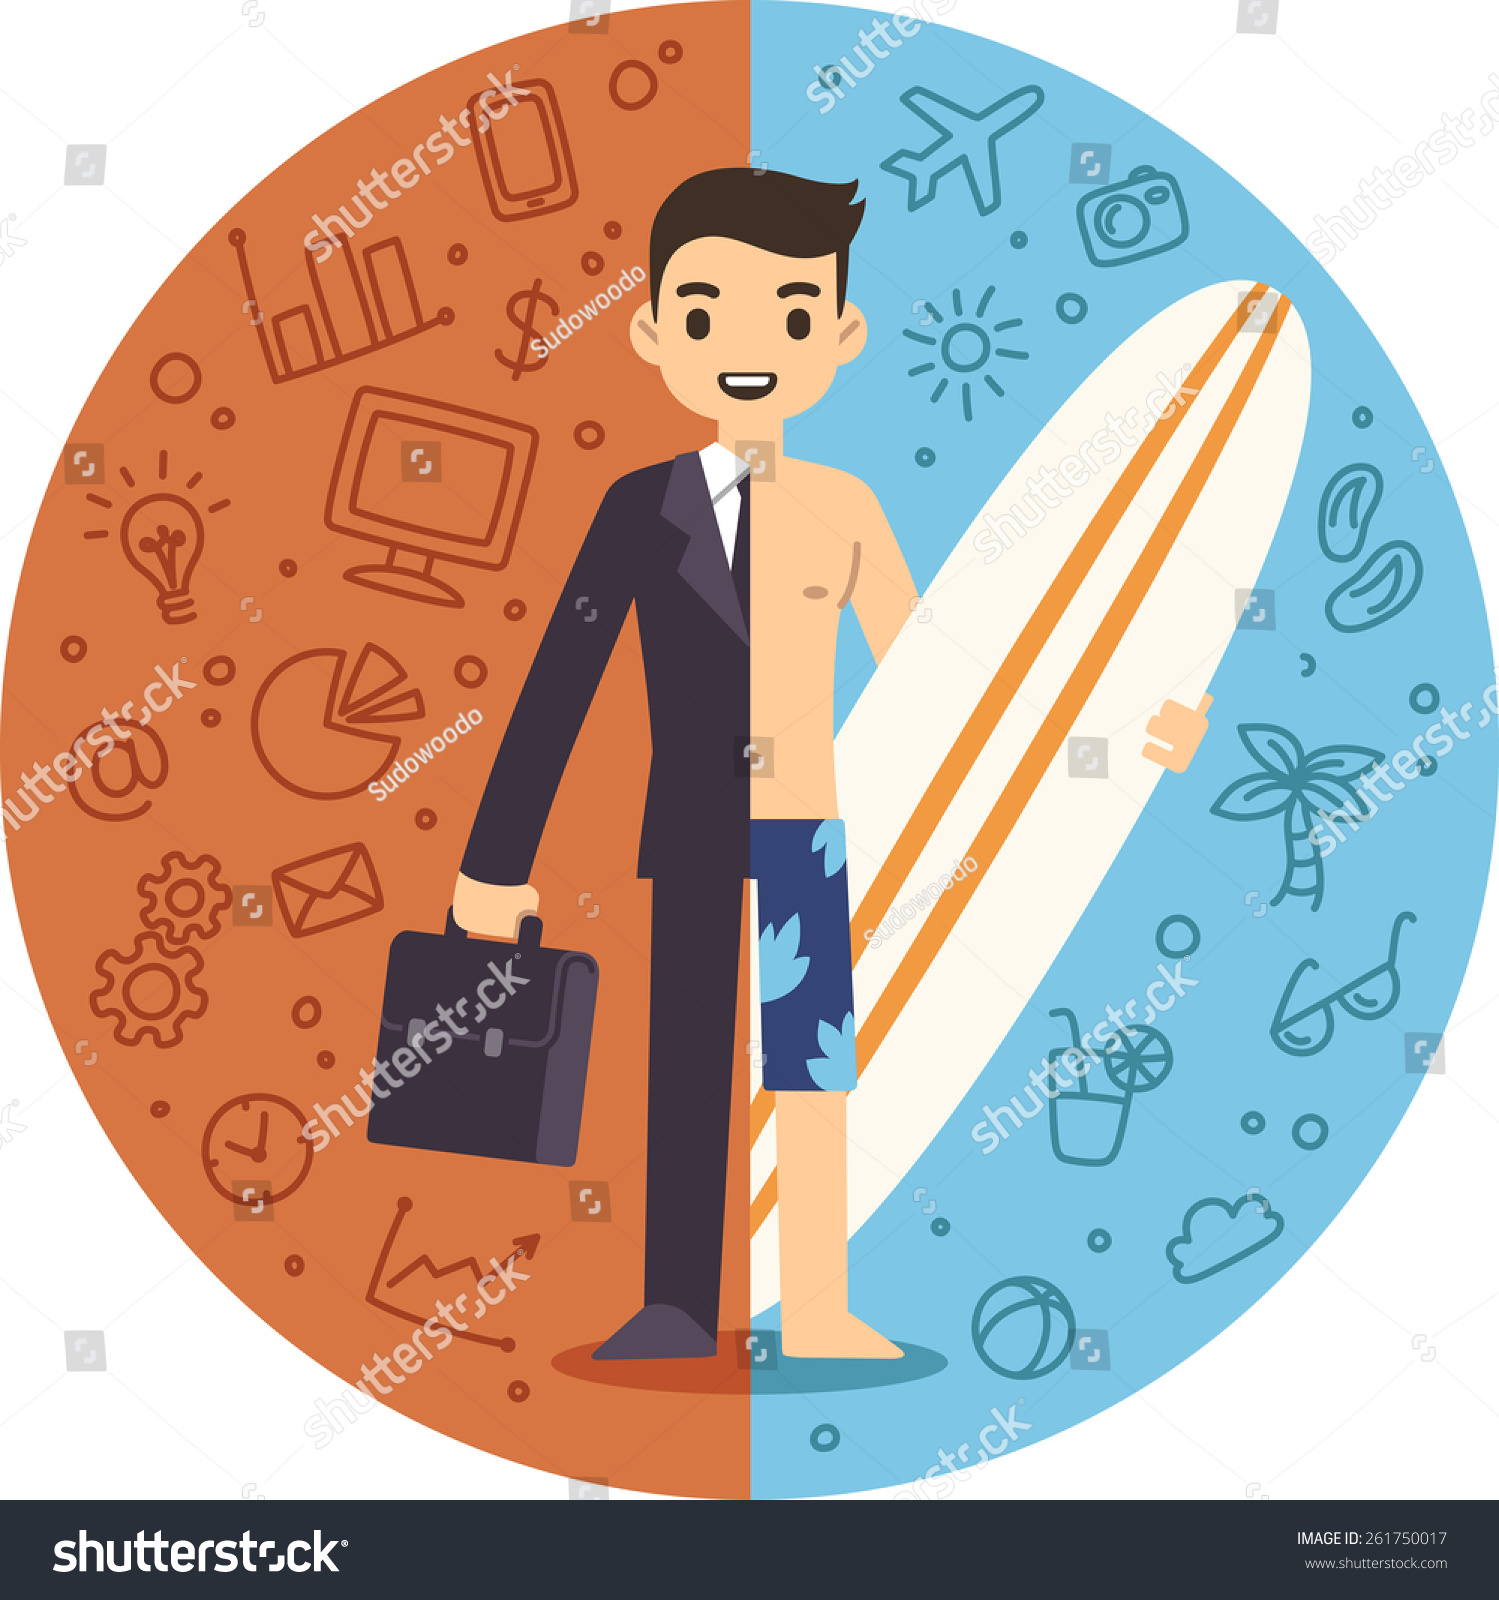 gender and work life balance Research by slaughter (2012) supports that true work/life balance can only be achieved by closing the leadership gap, by ensuring that women are equally represented in the ranks of corporate executives and judicial leaders.